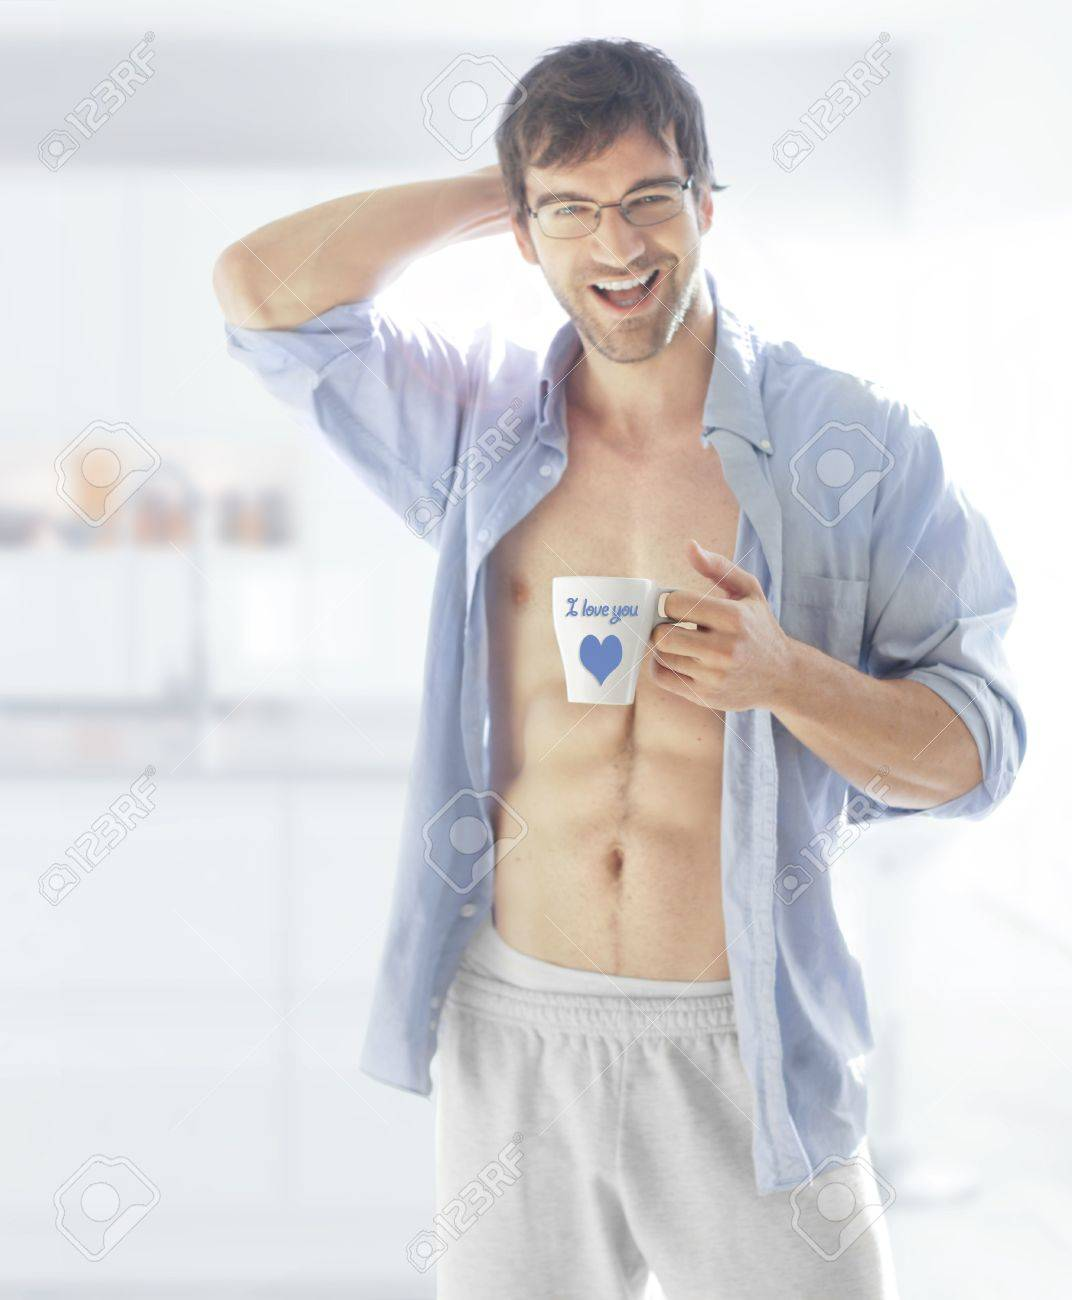 A hot looking smiling male model holding coffee cup that reads &quot,I Love You&quot, with a heart symbol Stock Photo - 17383396